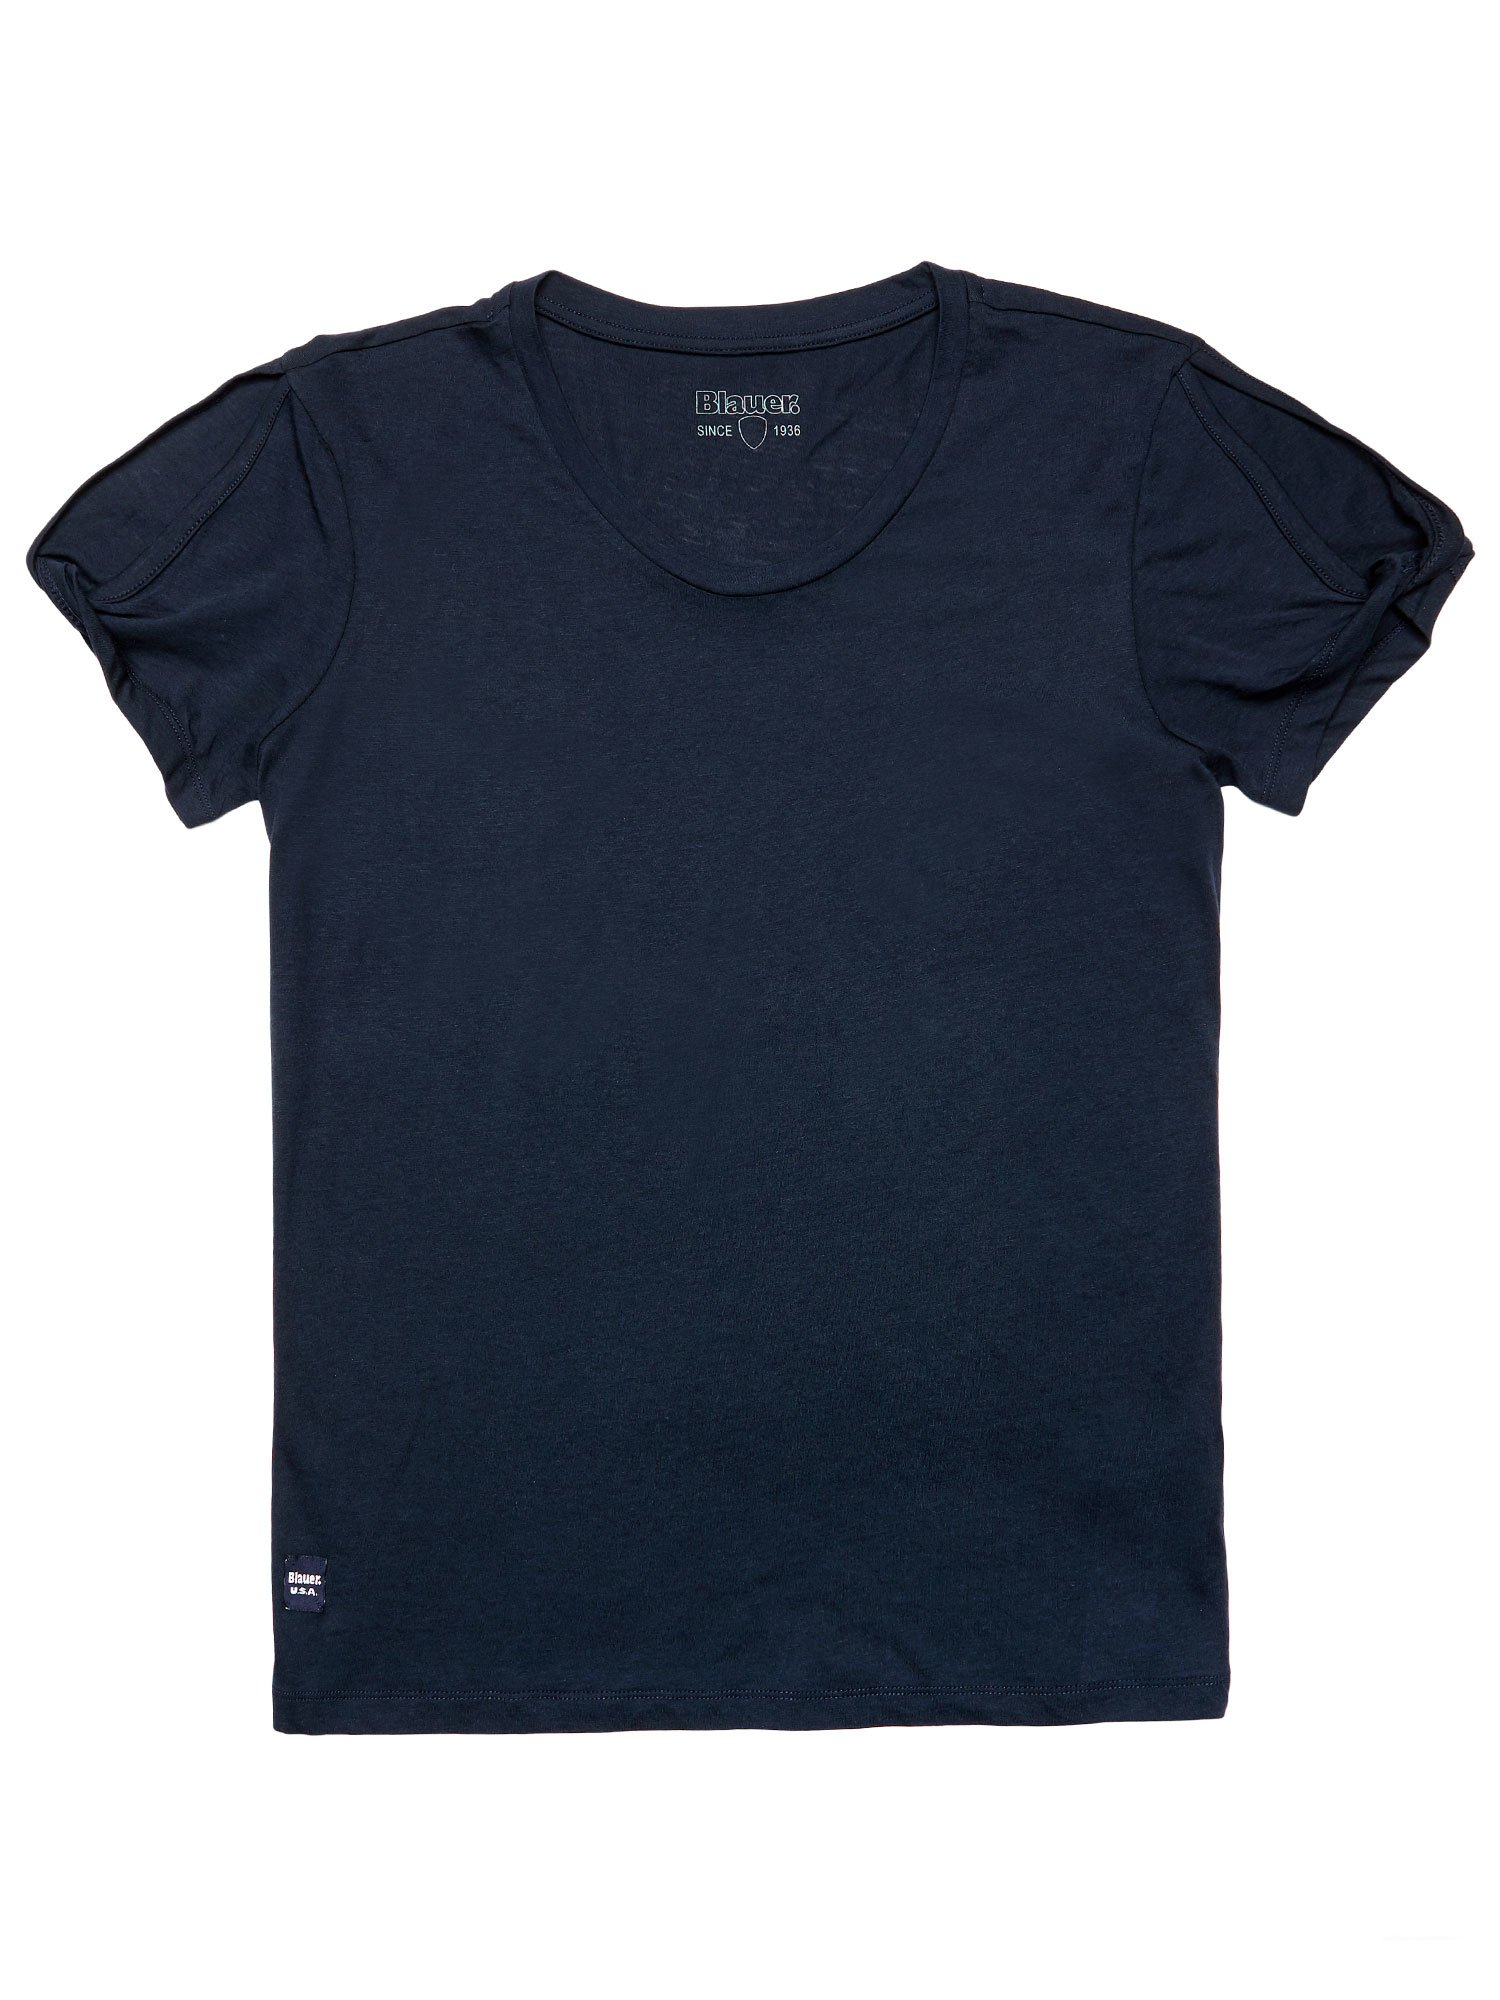 T-SHIRT COTONE MODAL CUT OUT - Blauer